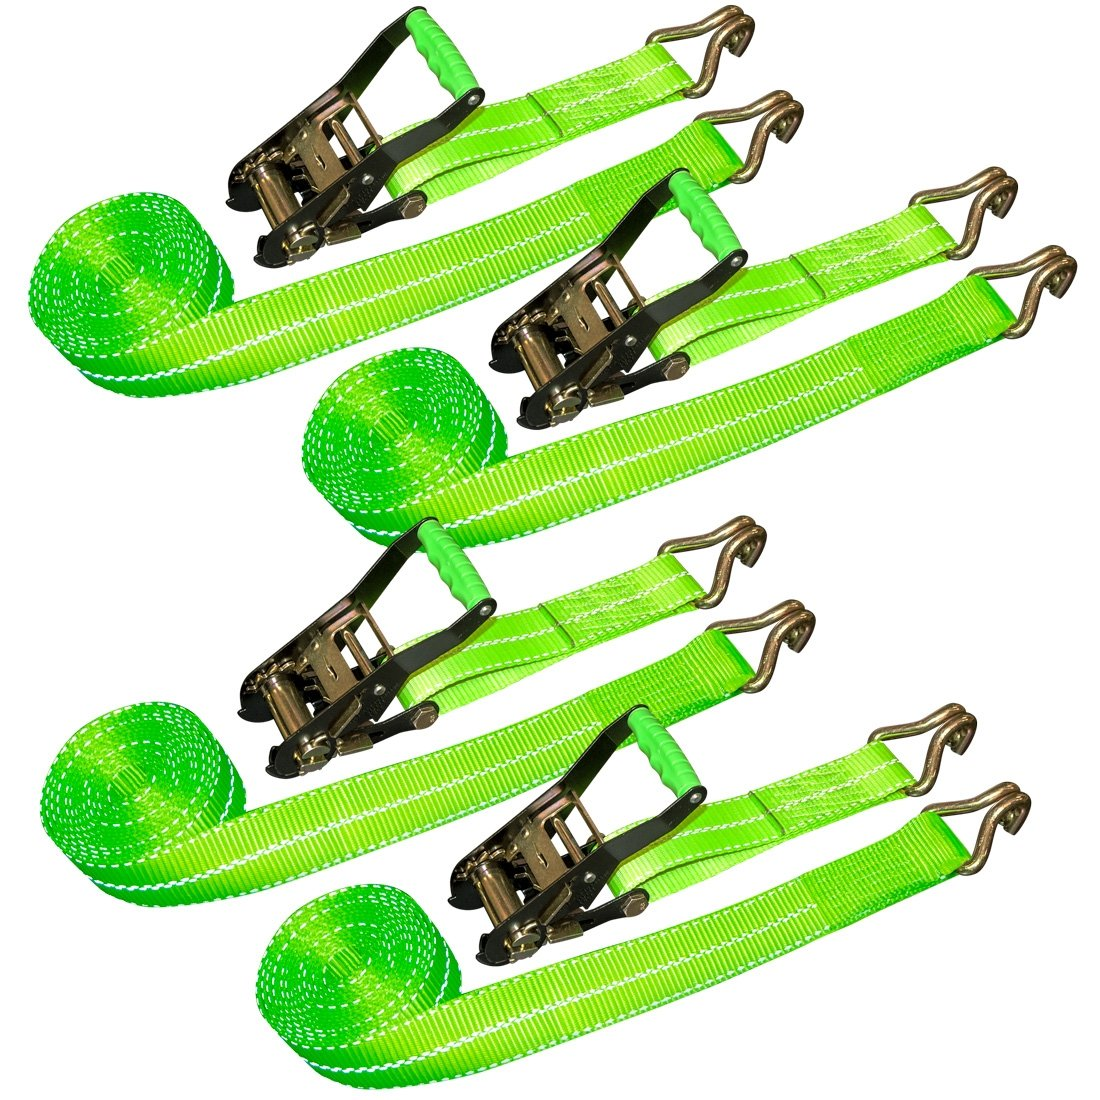 Vulcan HI-VIZ 2'' x 15' Ratchet Straps With Wire J-Hooks, 3300 lbs. SWL, 4 Pack